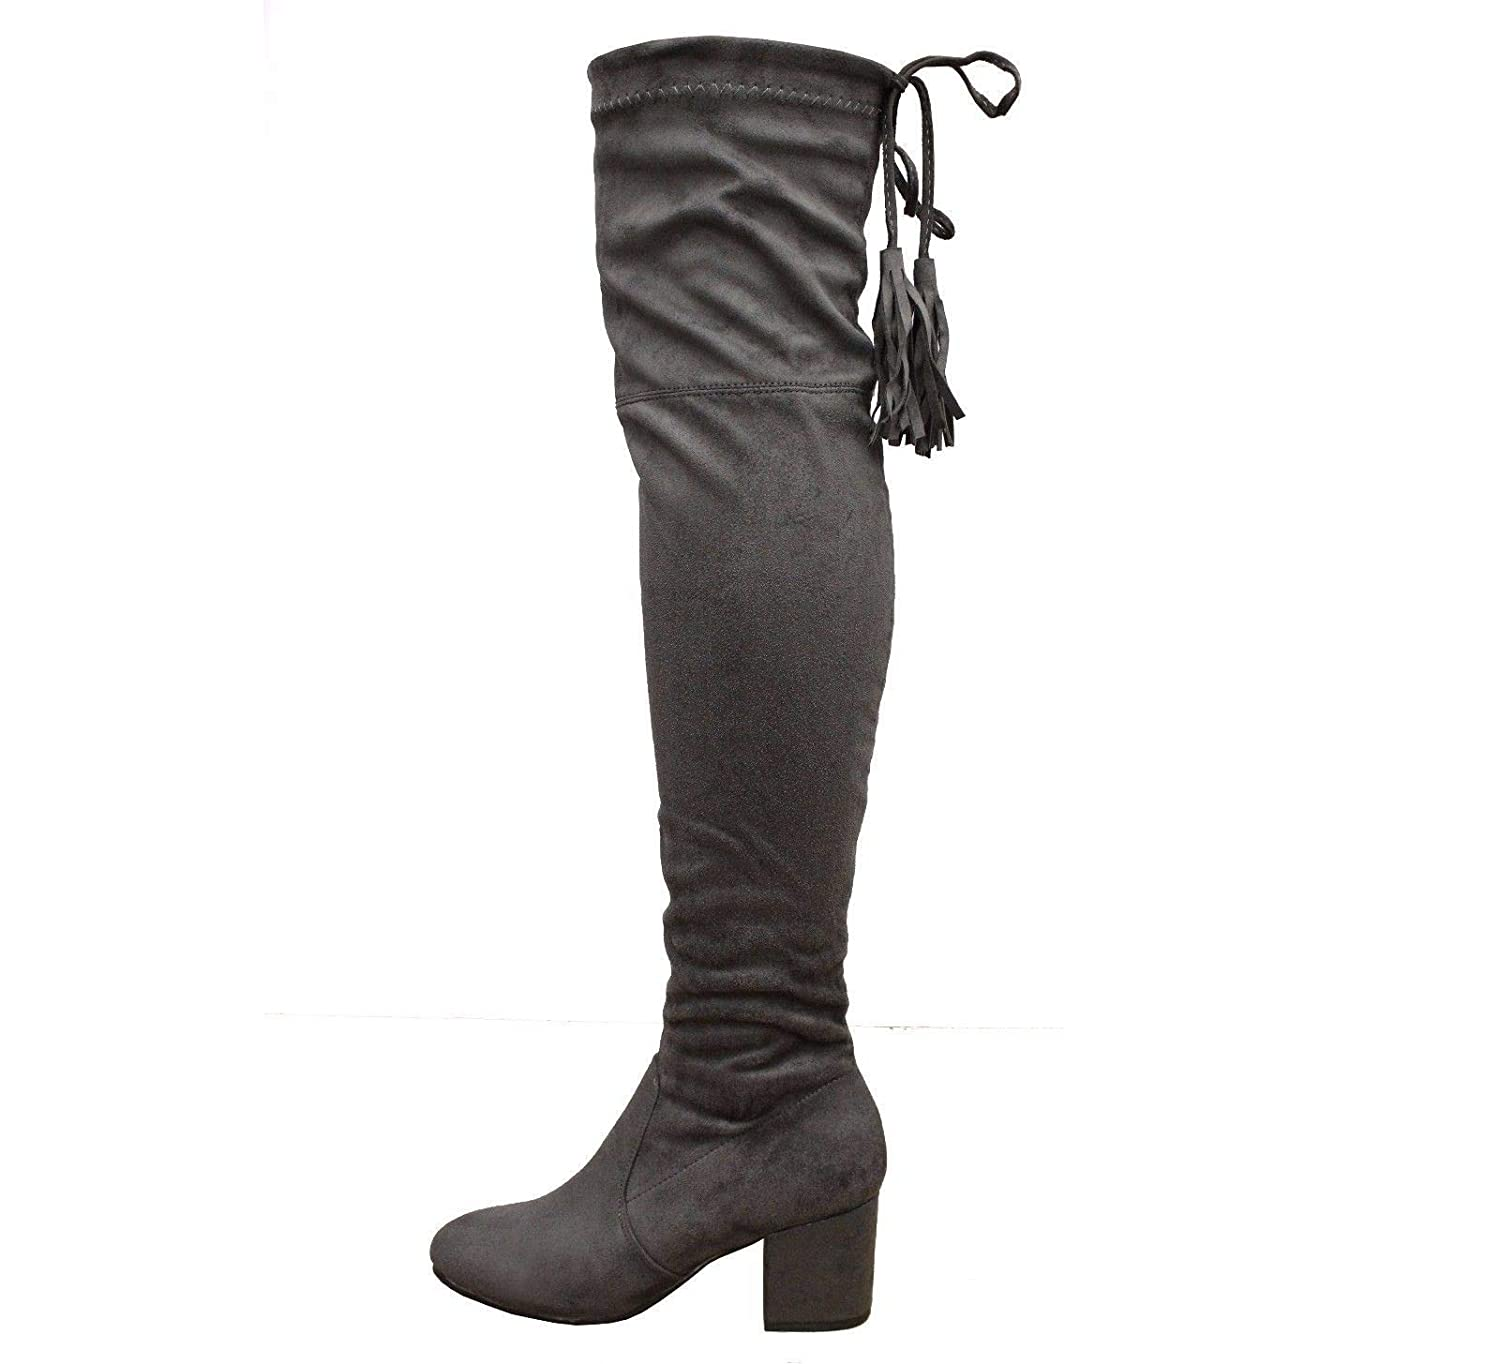 f67ba66ee7fe Womens Block Mid Heel Thigh High Over The Knee Wide Calf Boots Size 3-8   Amazon.co.uk  Shoes   Bags